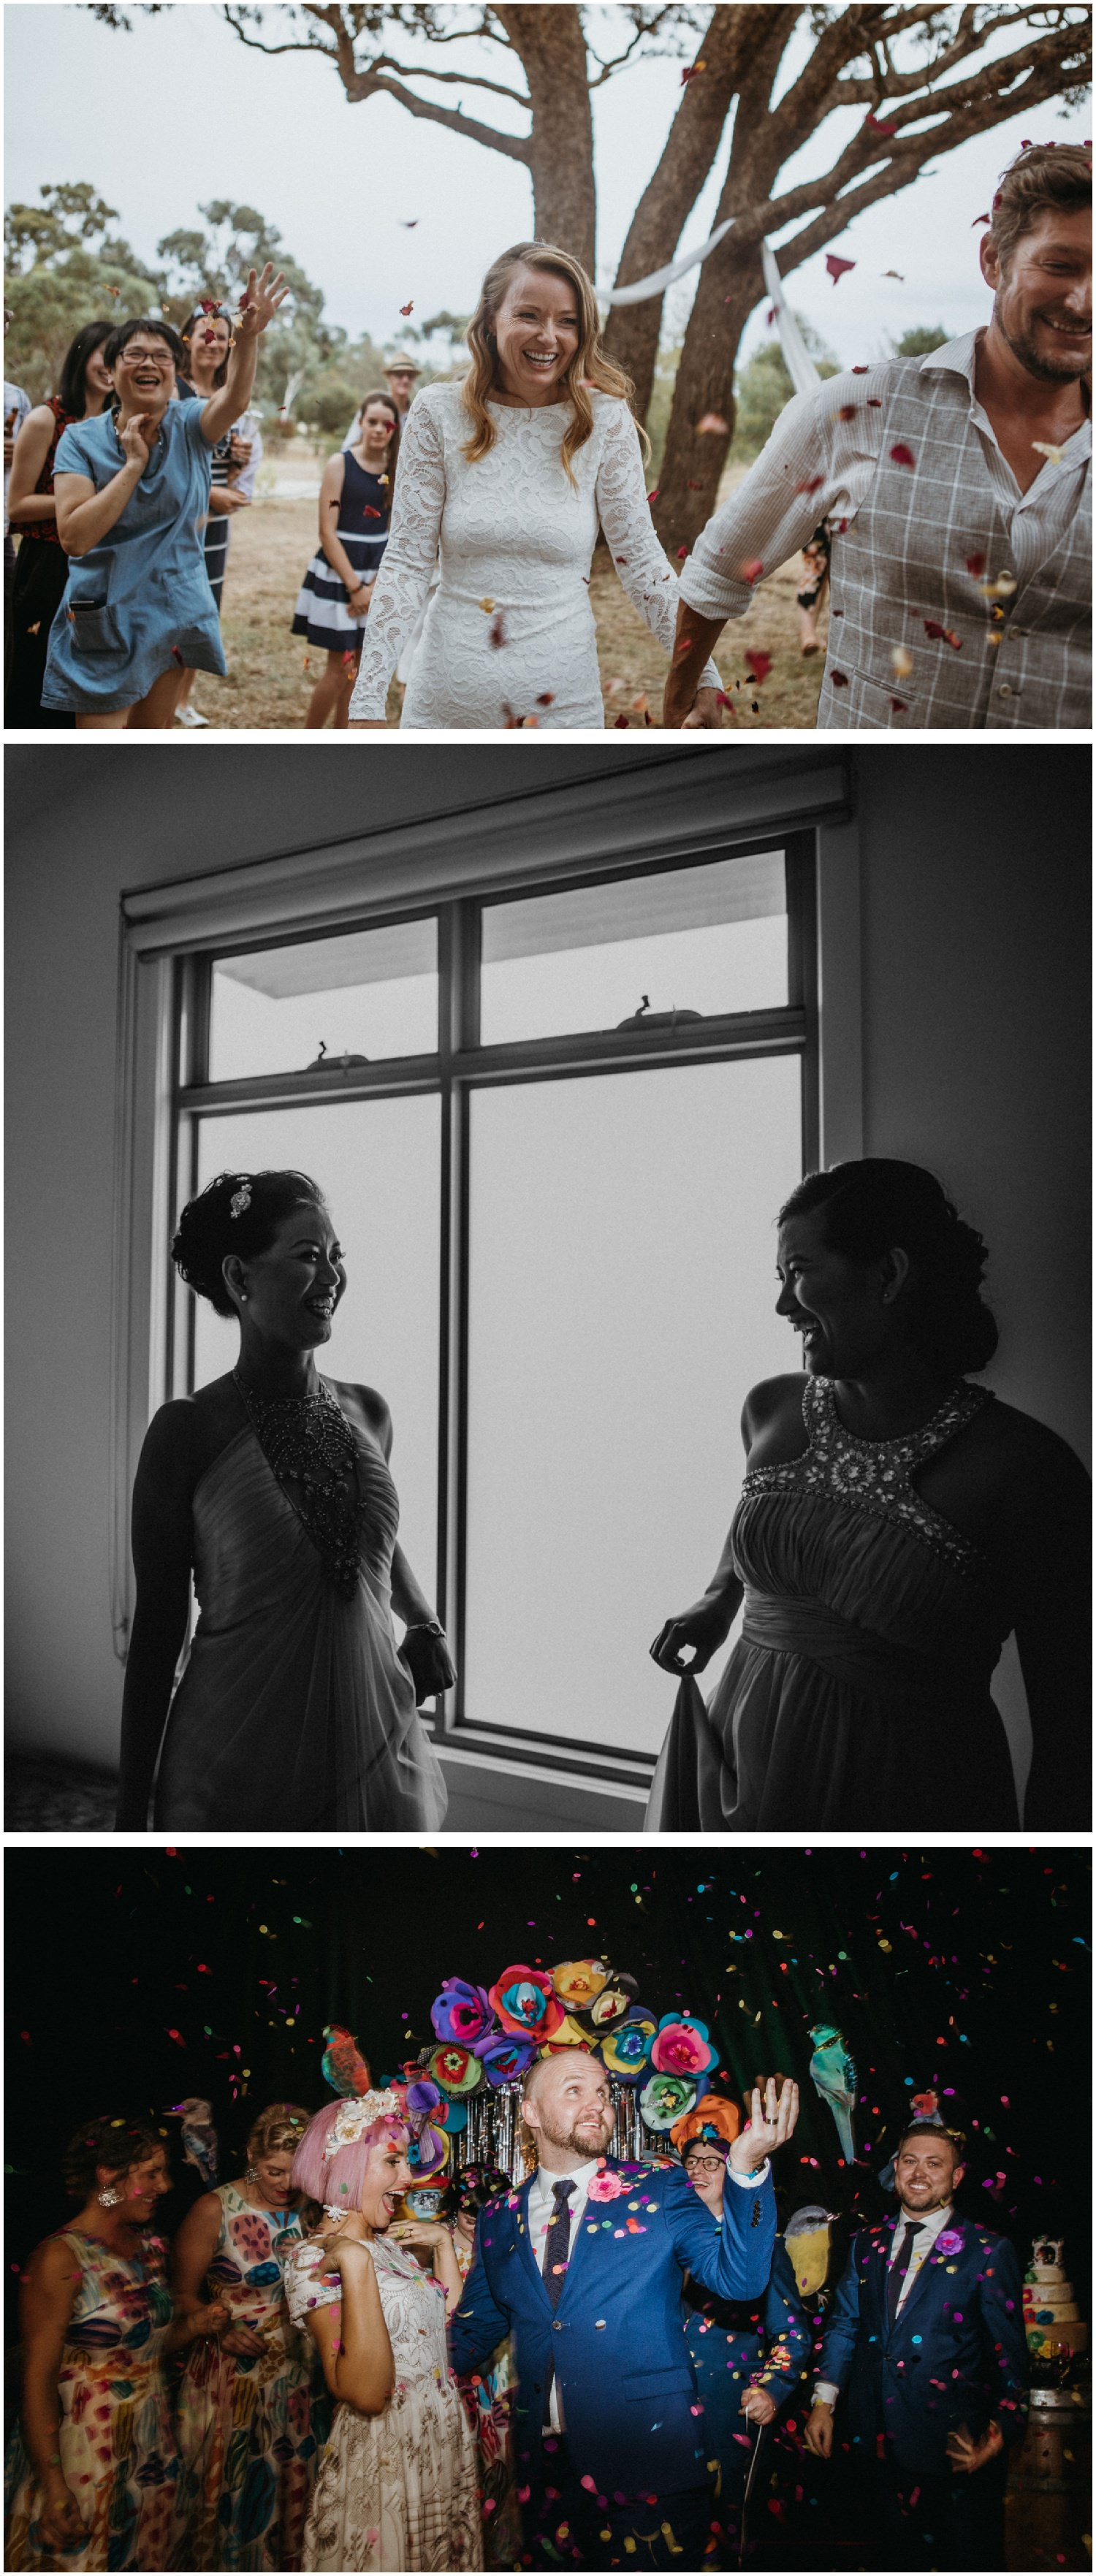 Melbourne Wedding Photographer - 2018 in review -185A9294.jpg